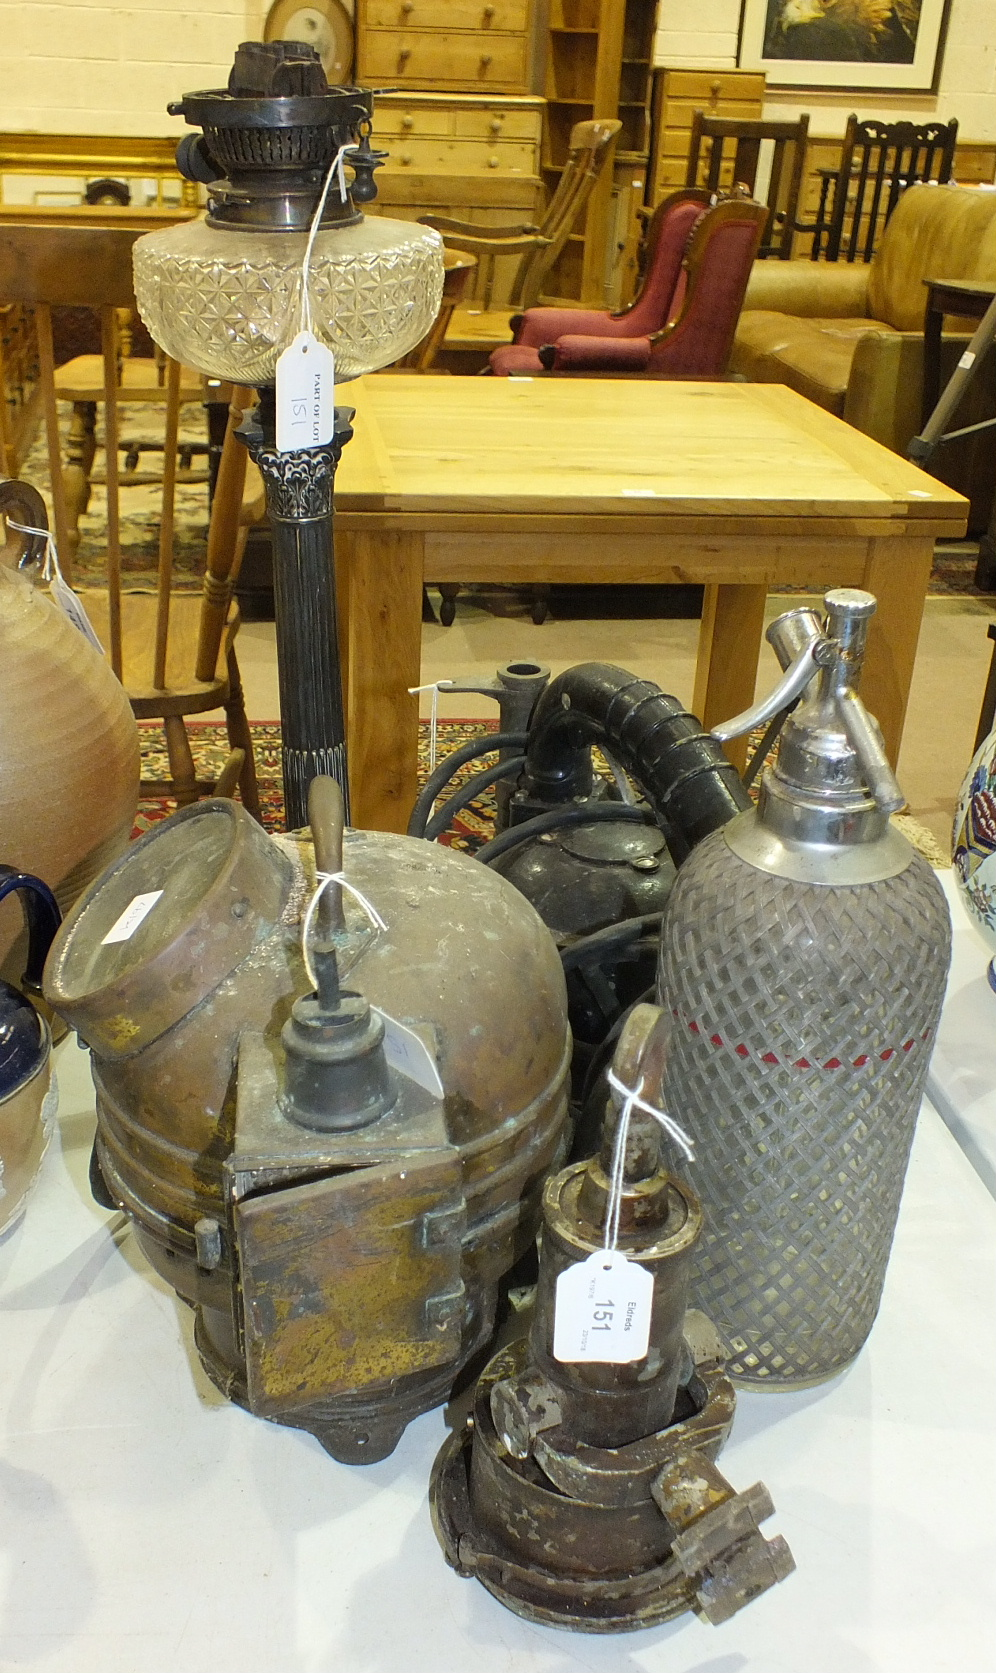 Lot 151 - A Walkers Cherub Mk3 ships log, a brass binnacle top with ships compass, (damaged), and other